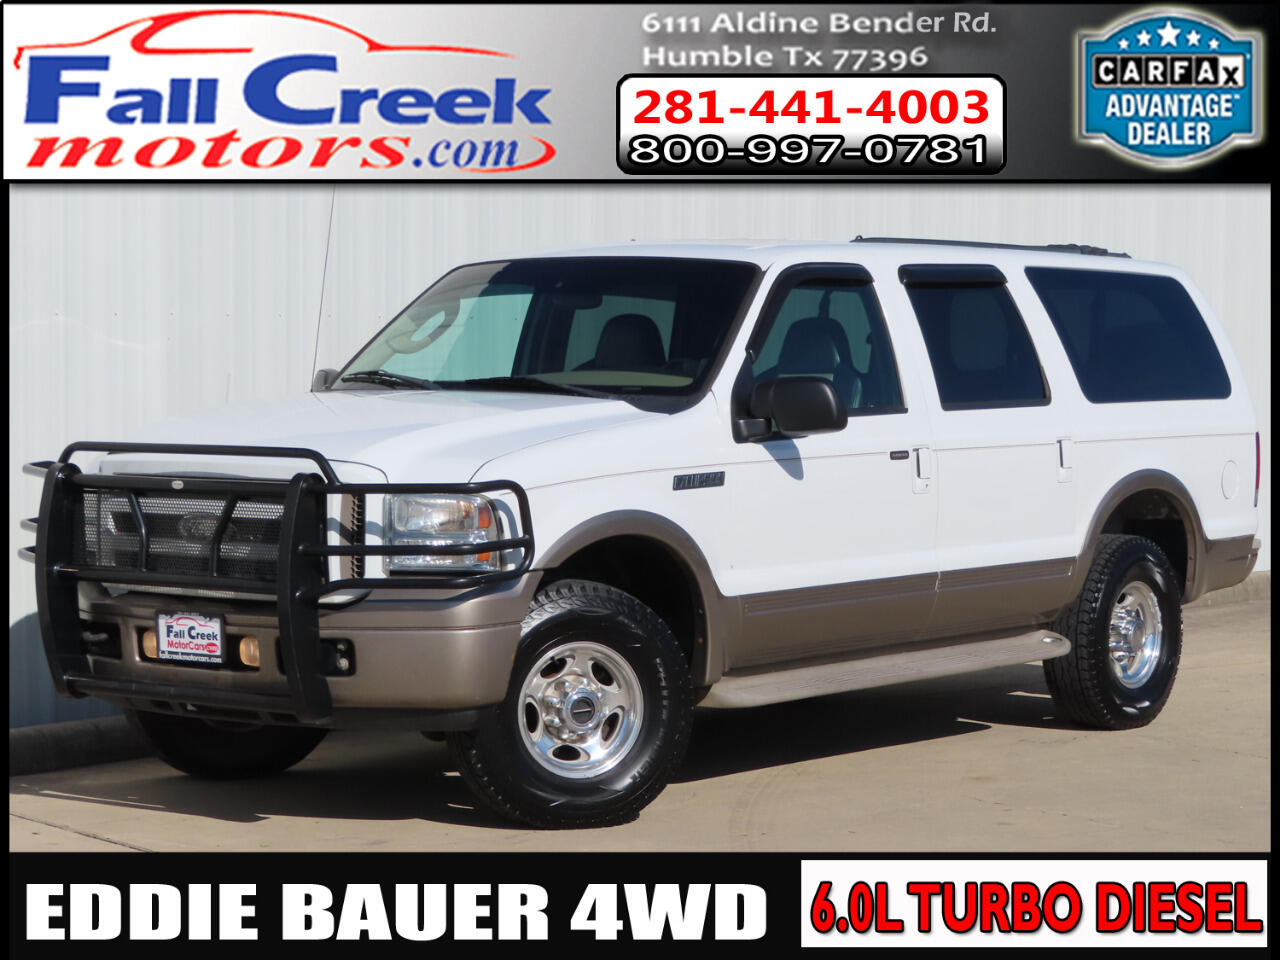 Ford Excursion Eddie Bauer 6.0L 4WD 2005